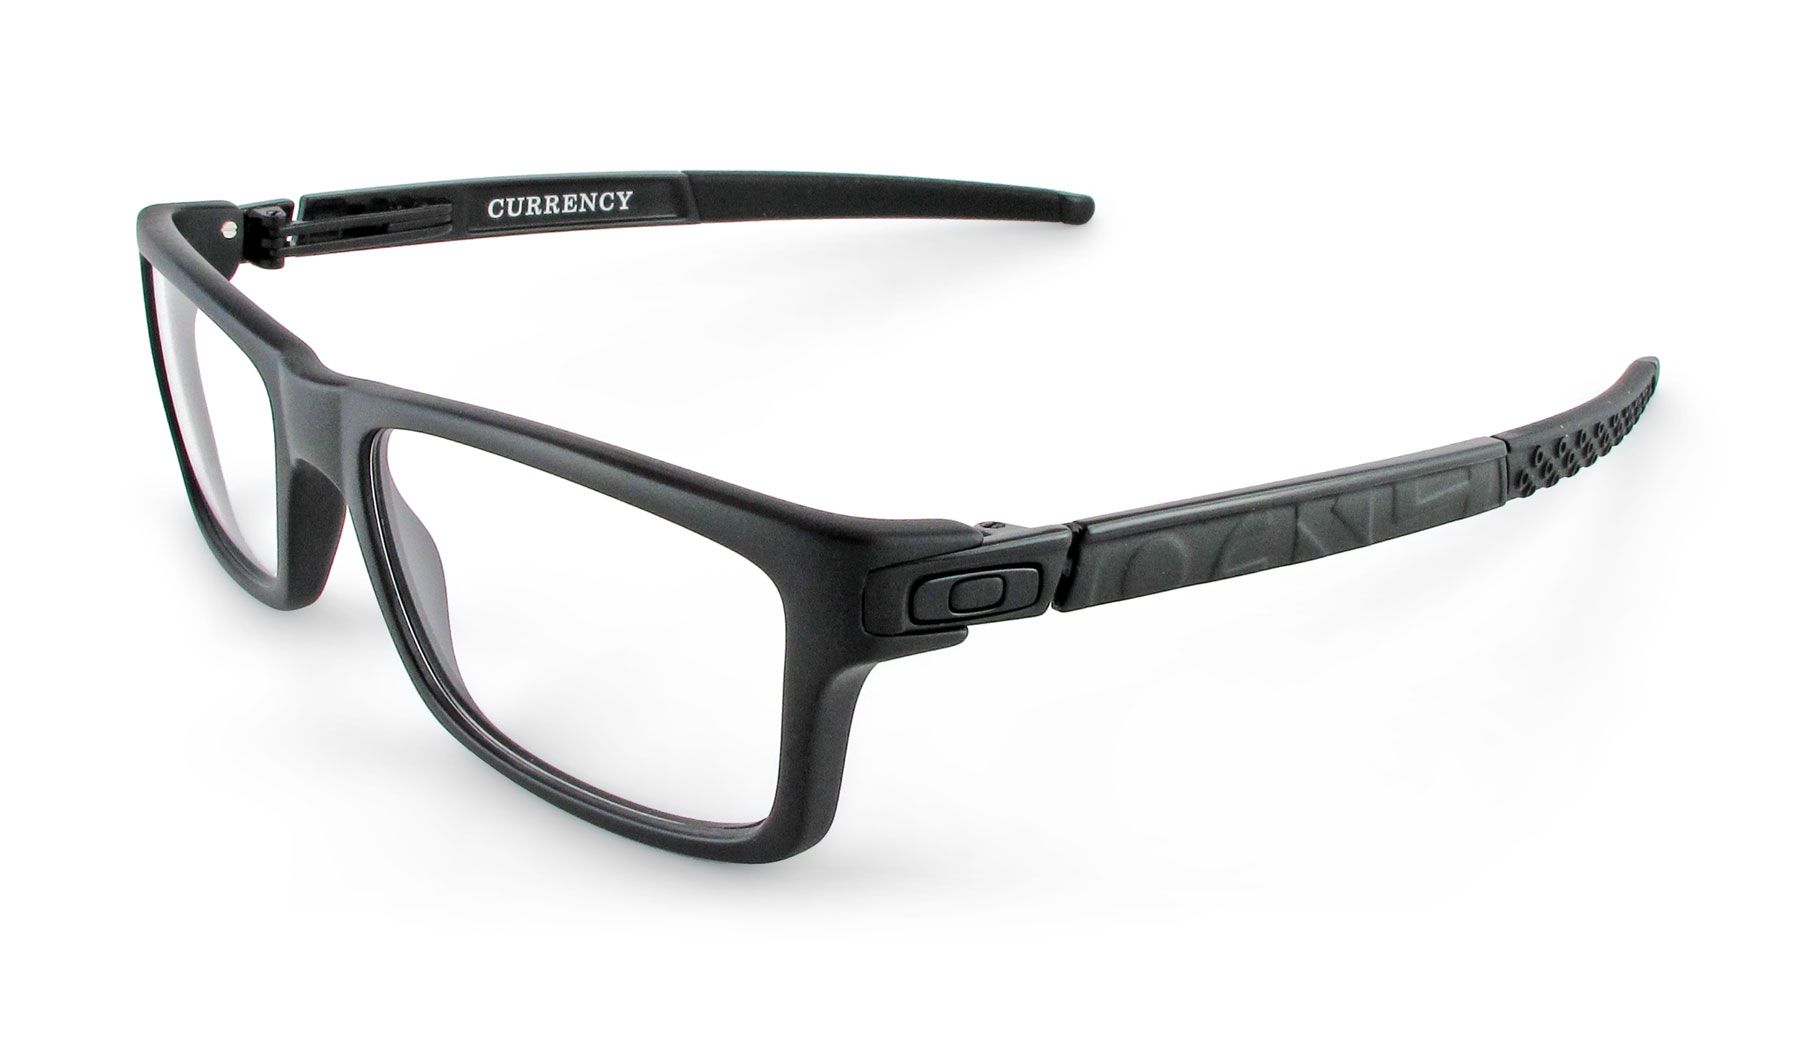 Oakley Currency Male Designer Prescription Glasses in Black